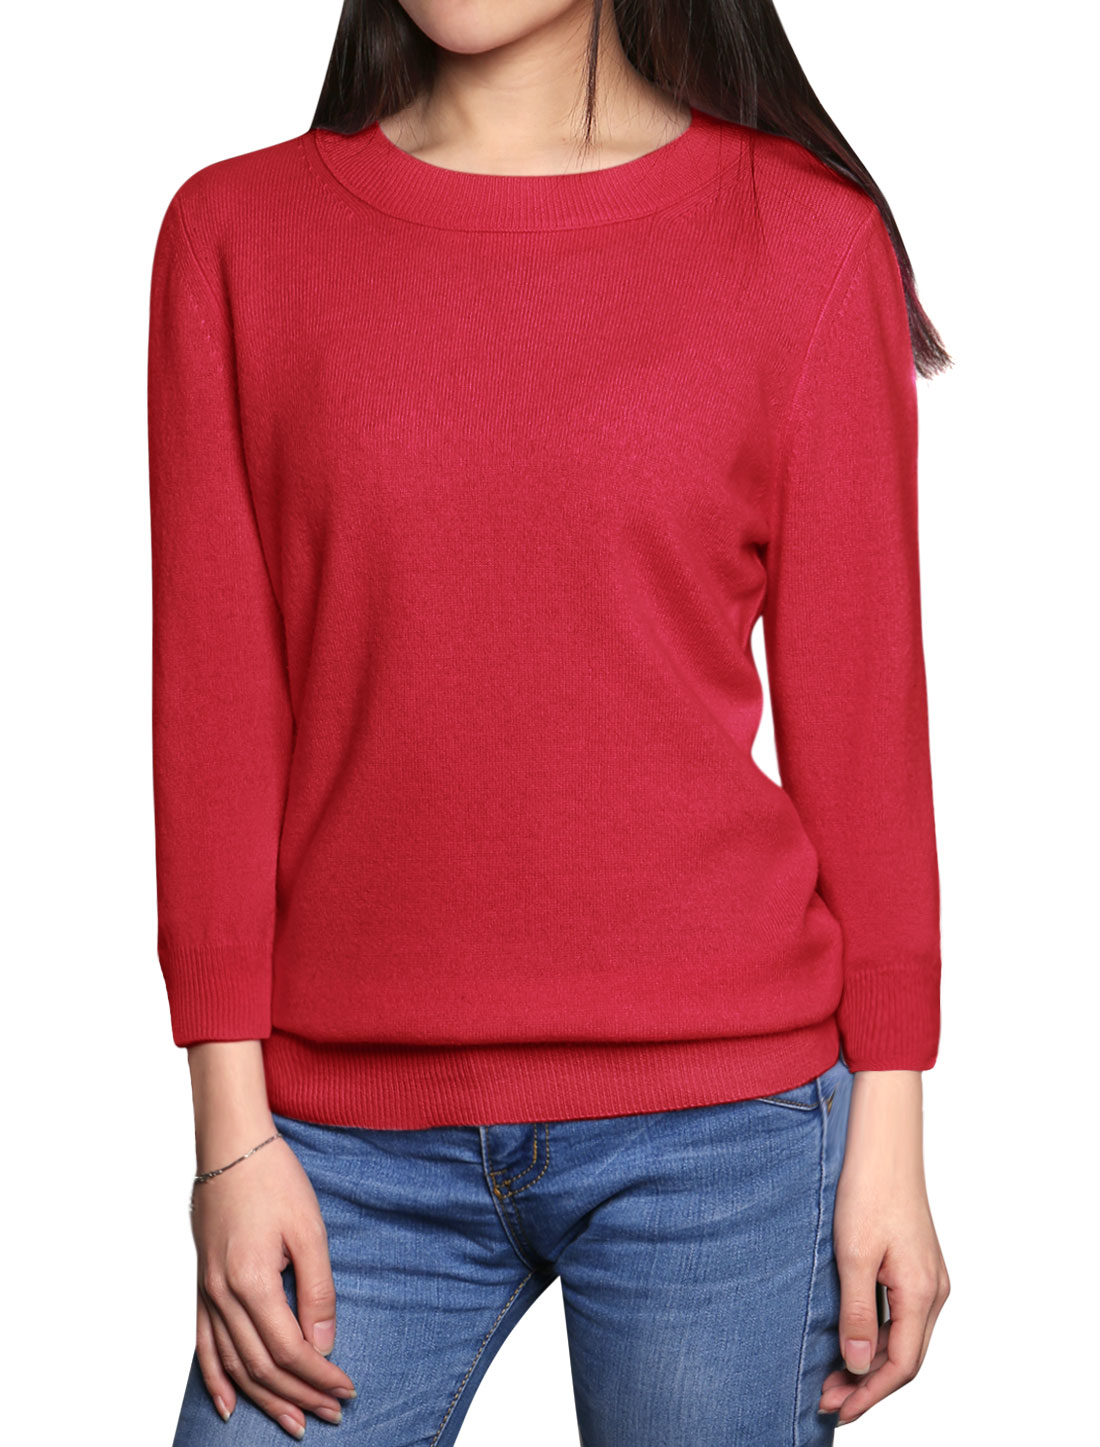 Lady Crewneck 3/4 Sleeves Cashmere Sweater Red XL